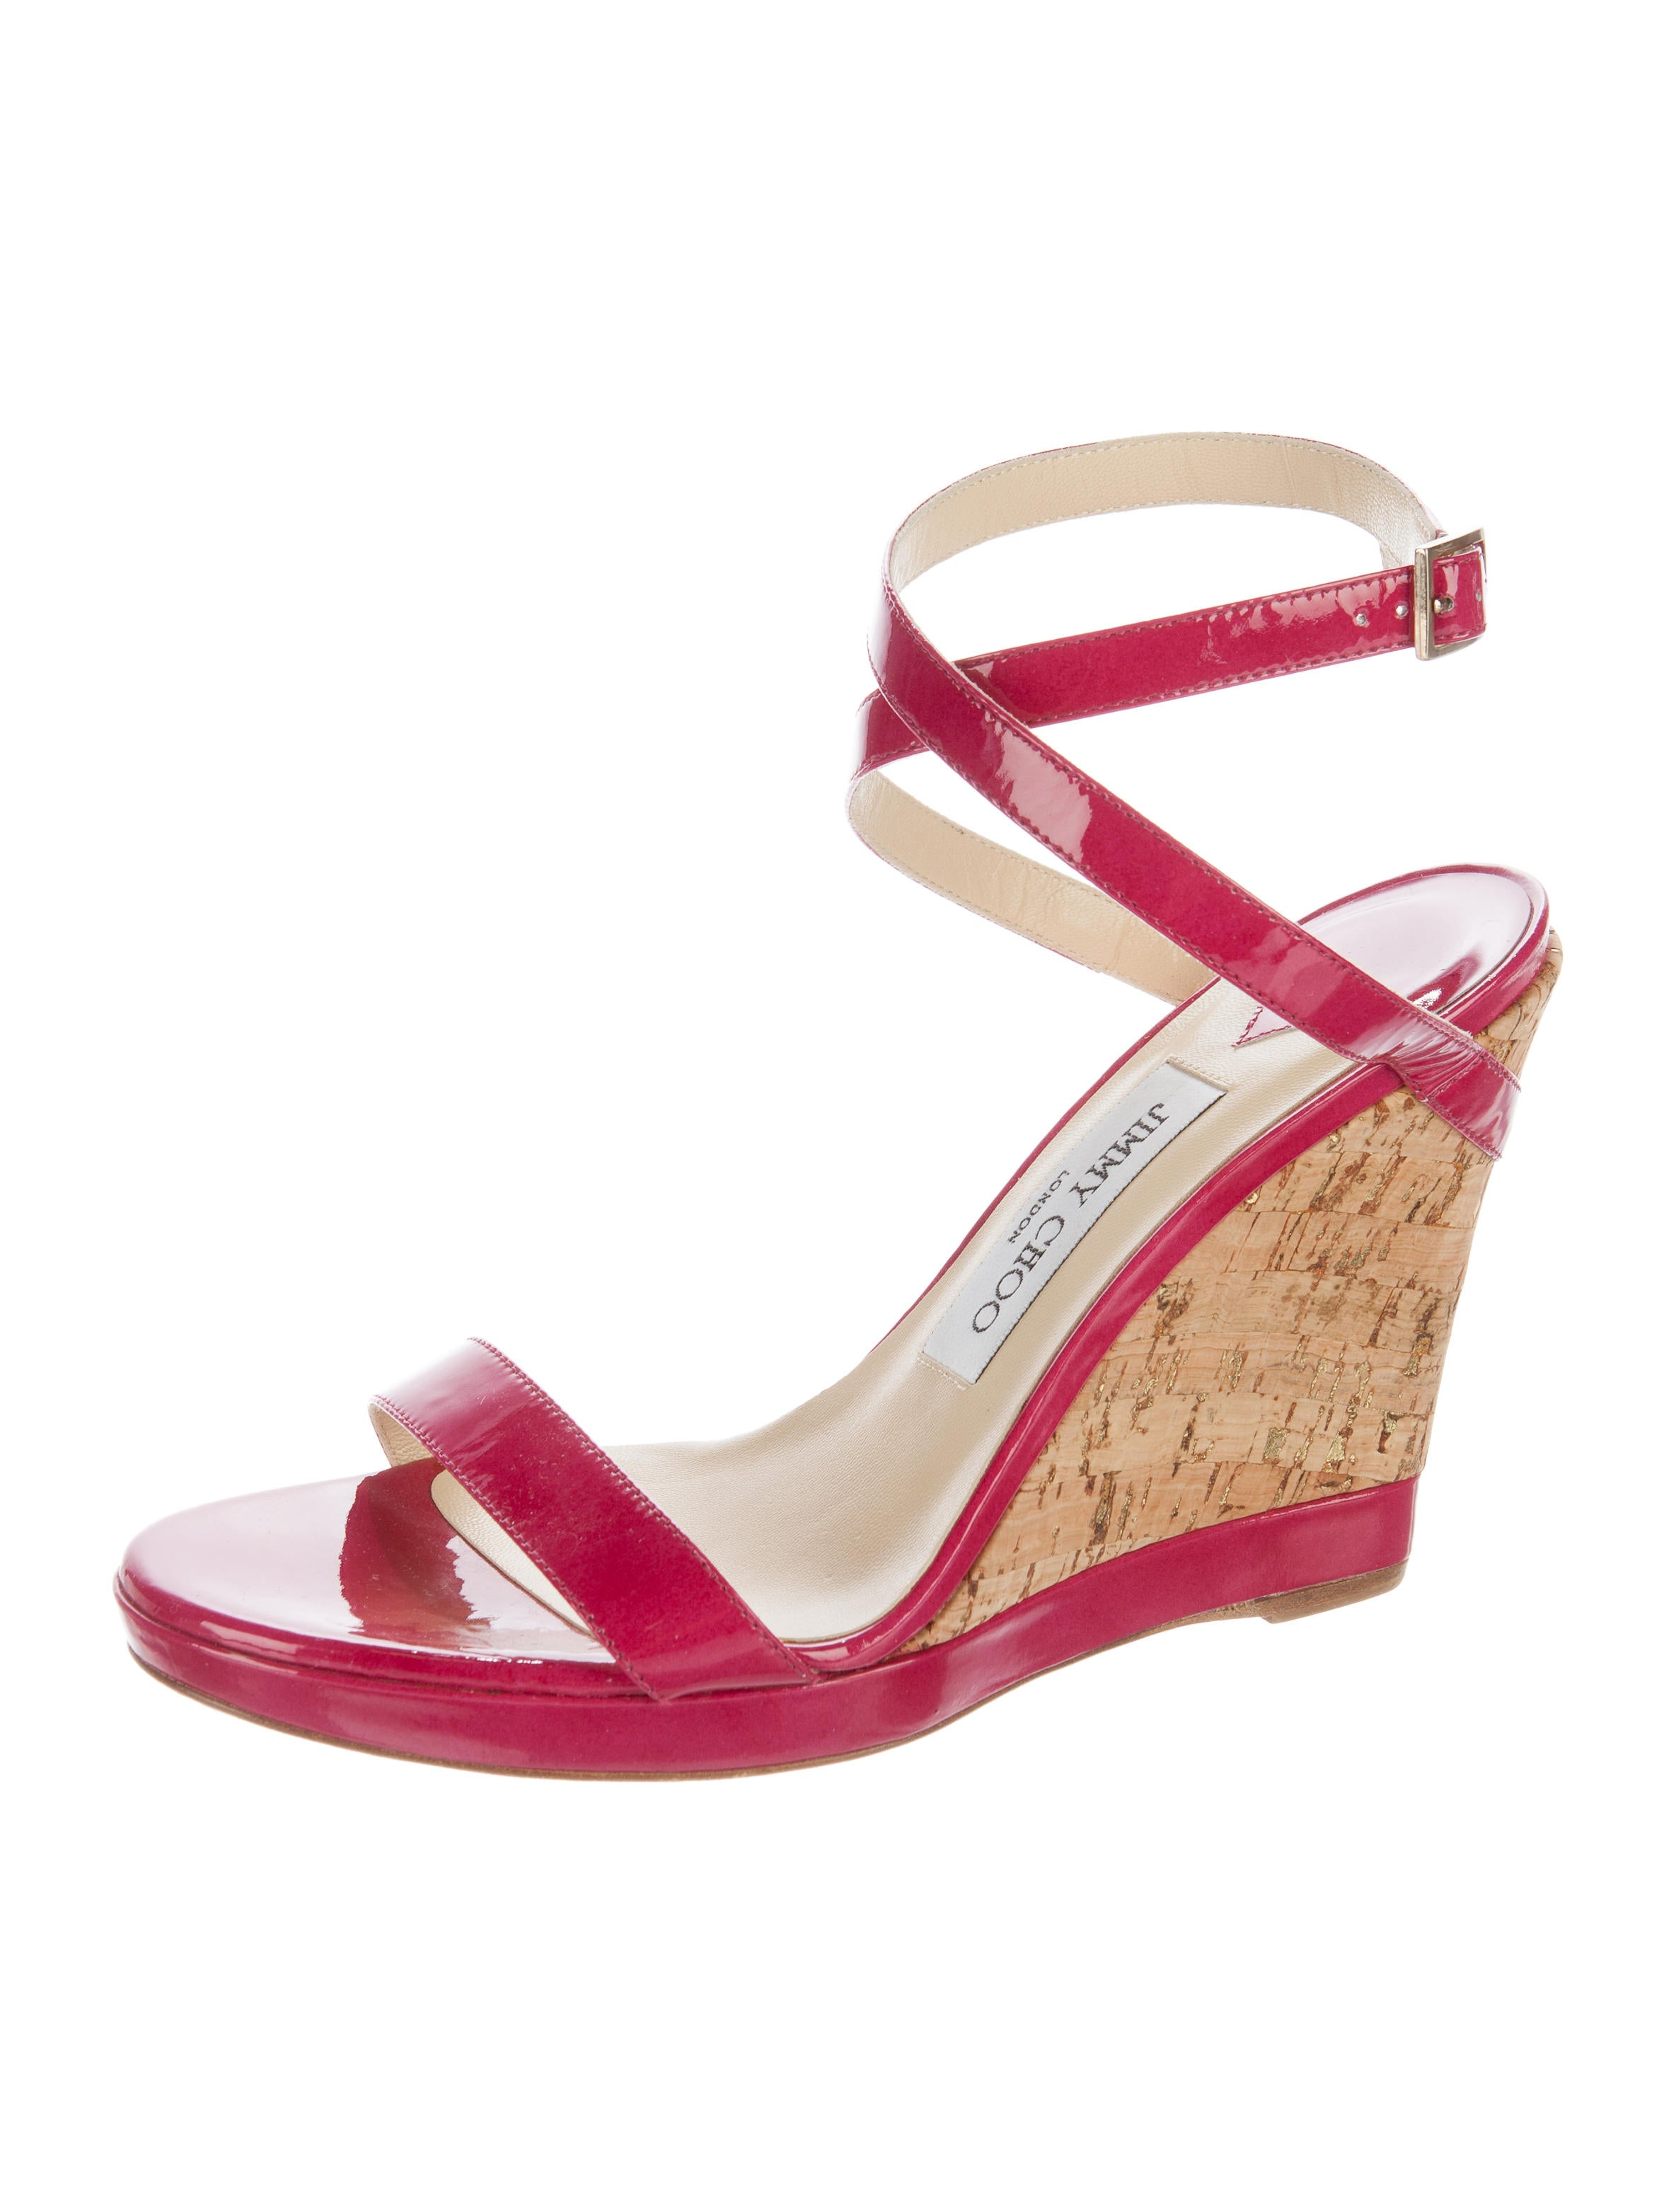 jimmy choo patent leather wedge sandals shoes jim62076